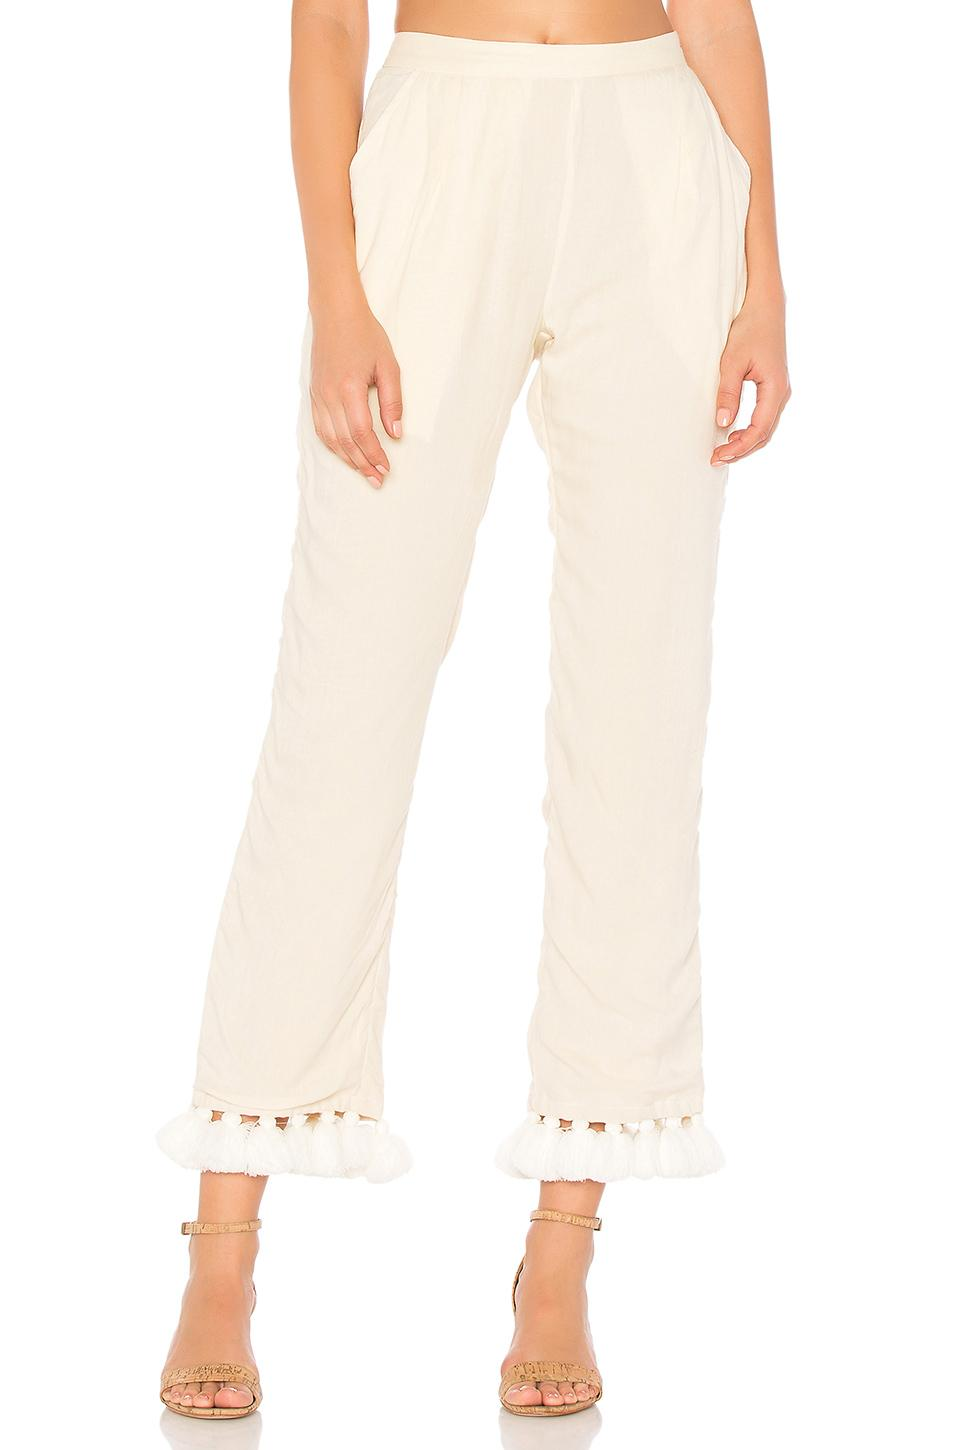 All Things Mochi The Dayu Pant In Beige